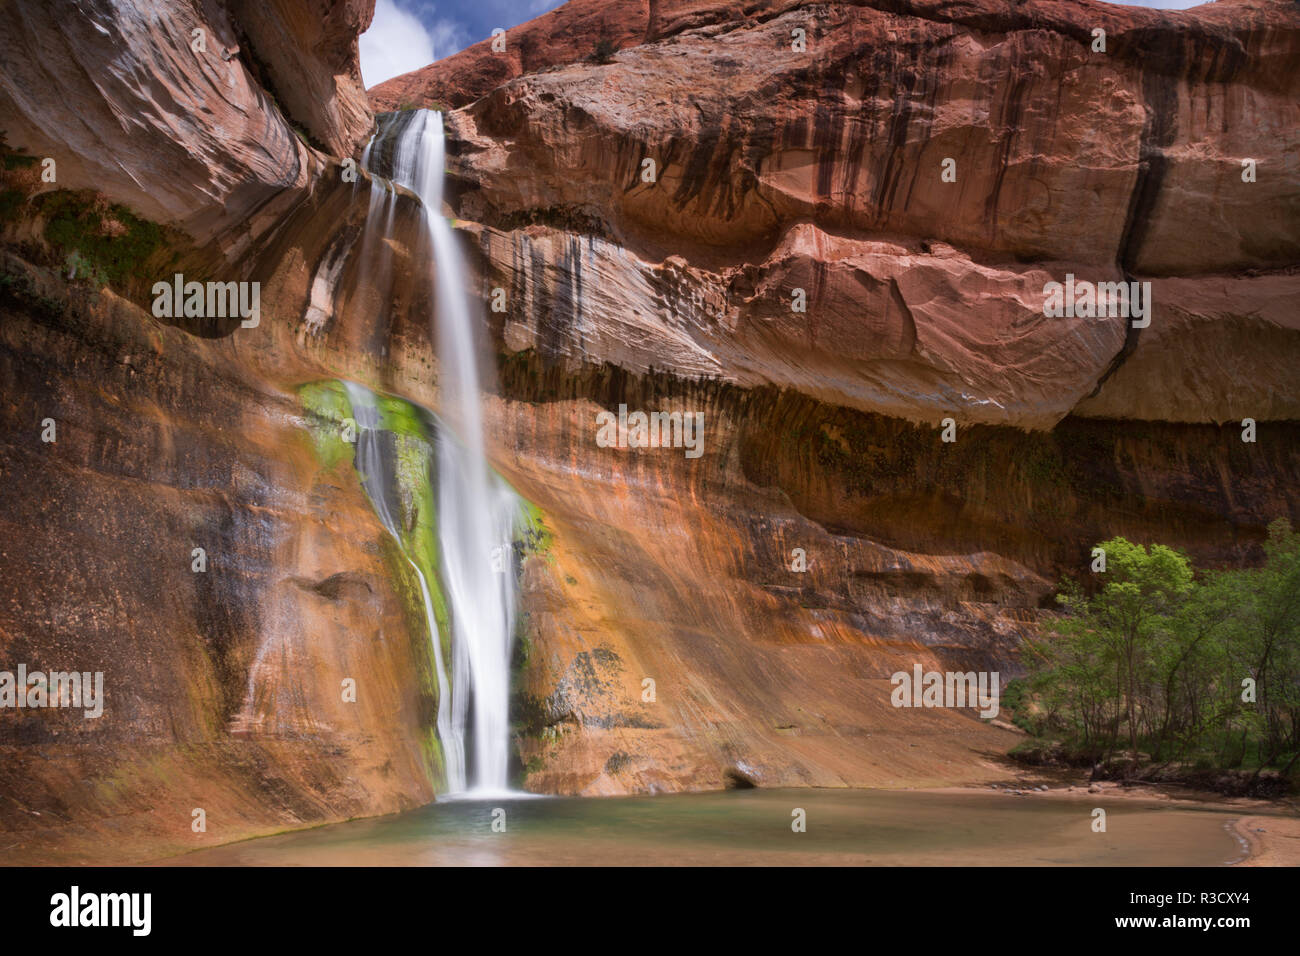 USA, Utah, Grand Staircase-Escalante National Monument. Lower Calf Creek Falls and sandstone cliff. - Stock Image